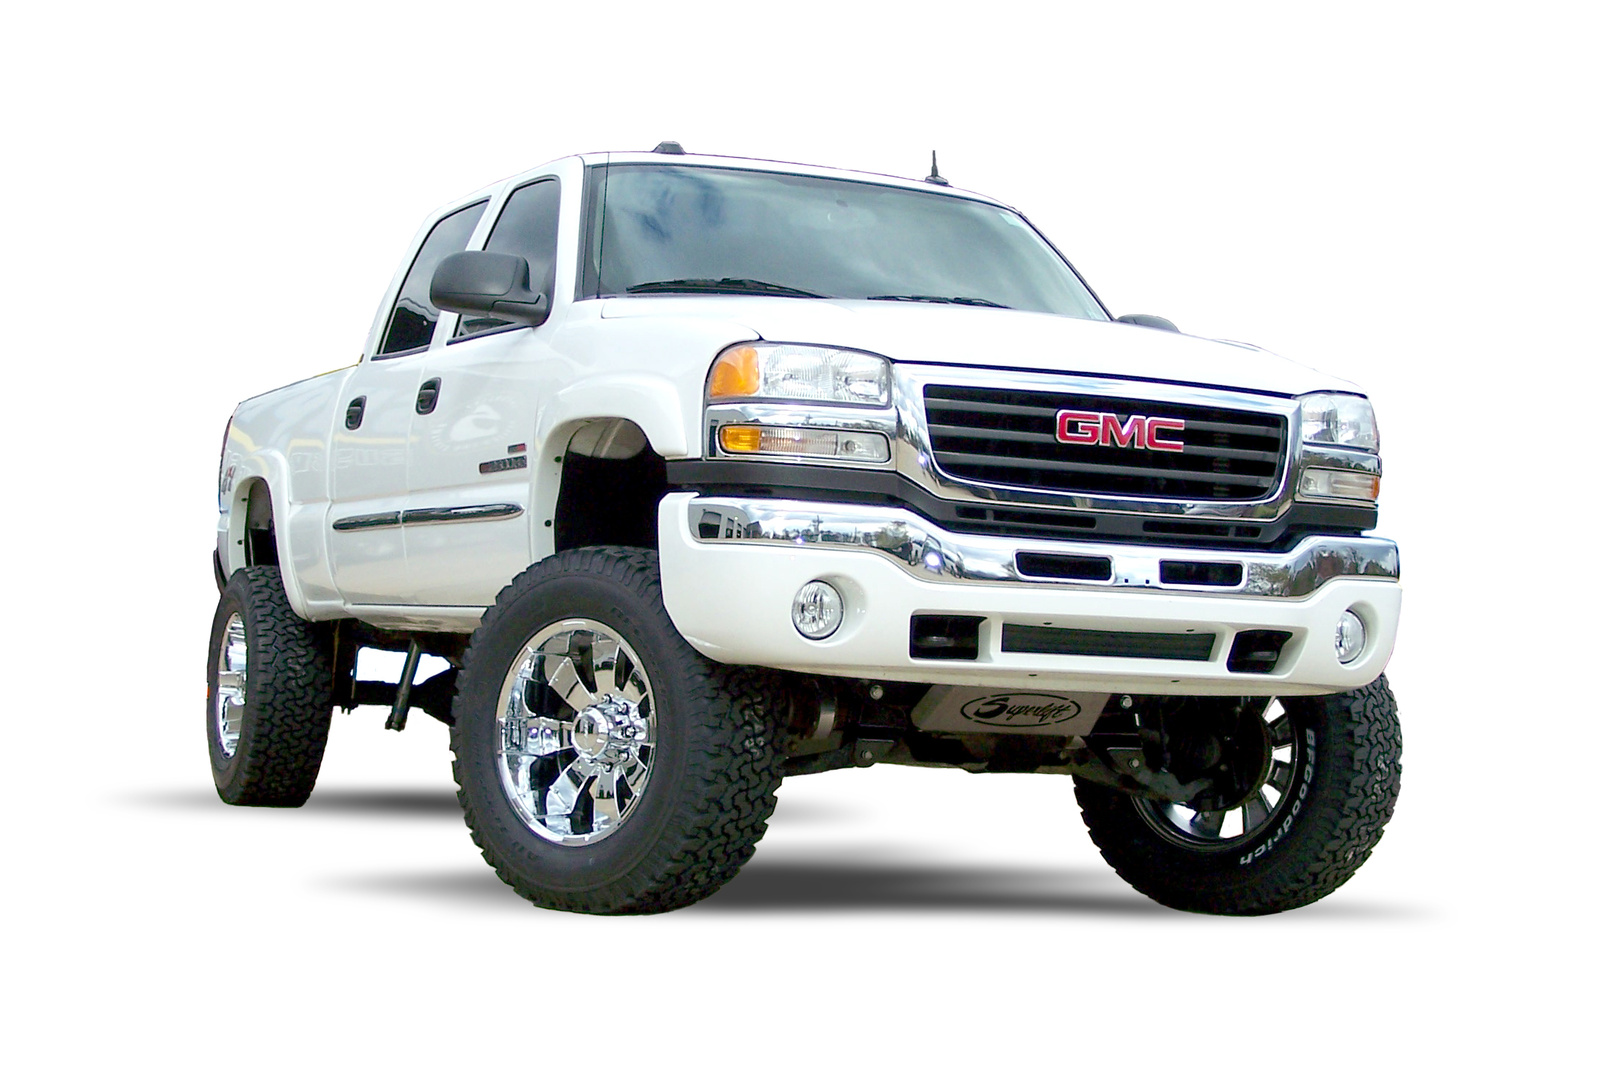 2006 GMC Sierra 2500hd #10